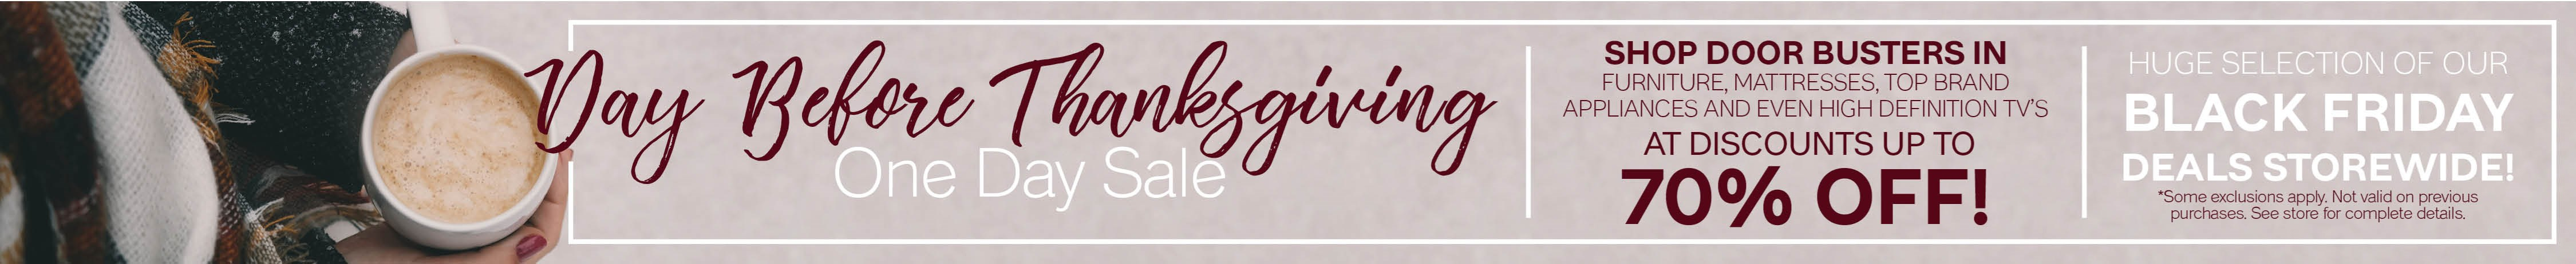 Furniture & ApplianceMart Day Before Thanksgiving 1 Day Sale